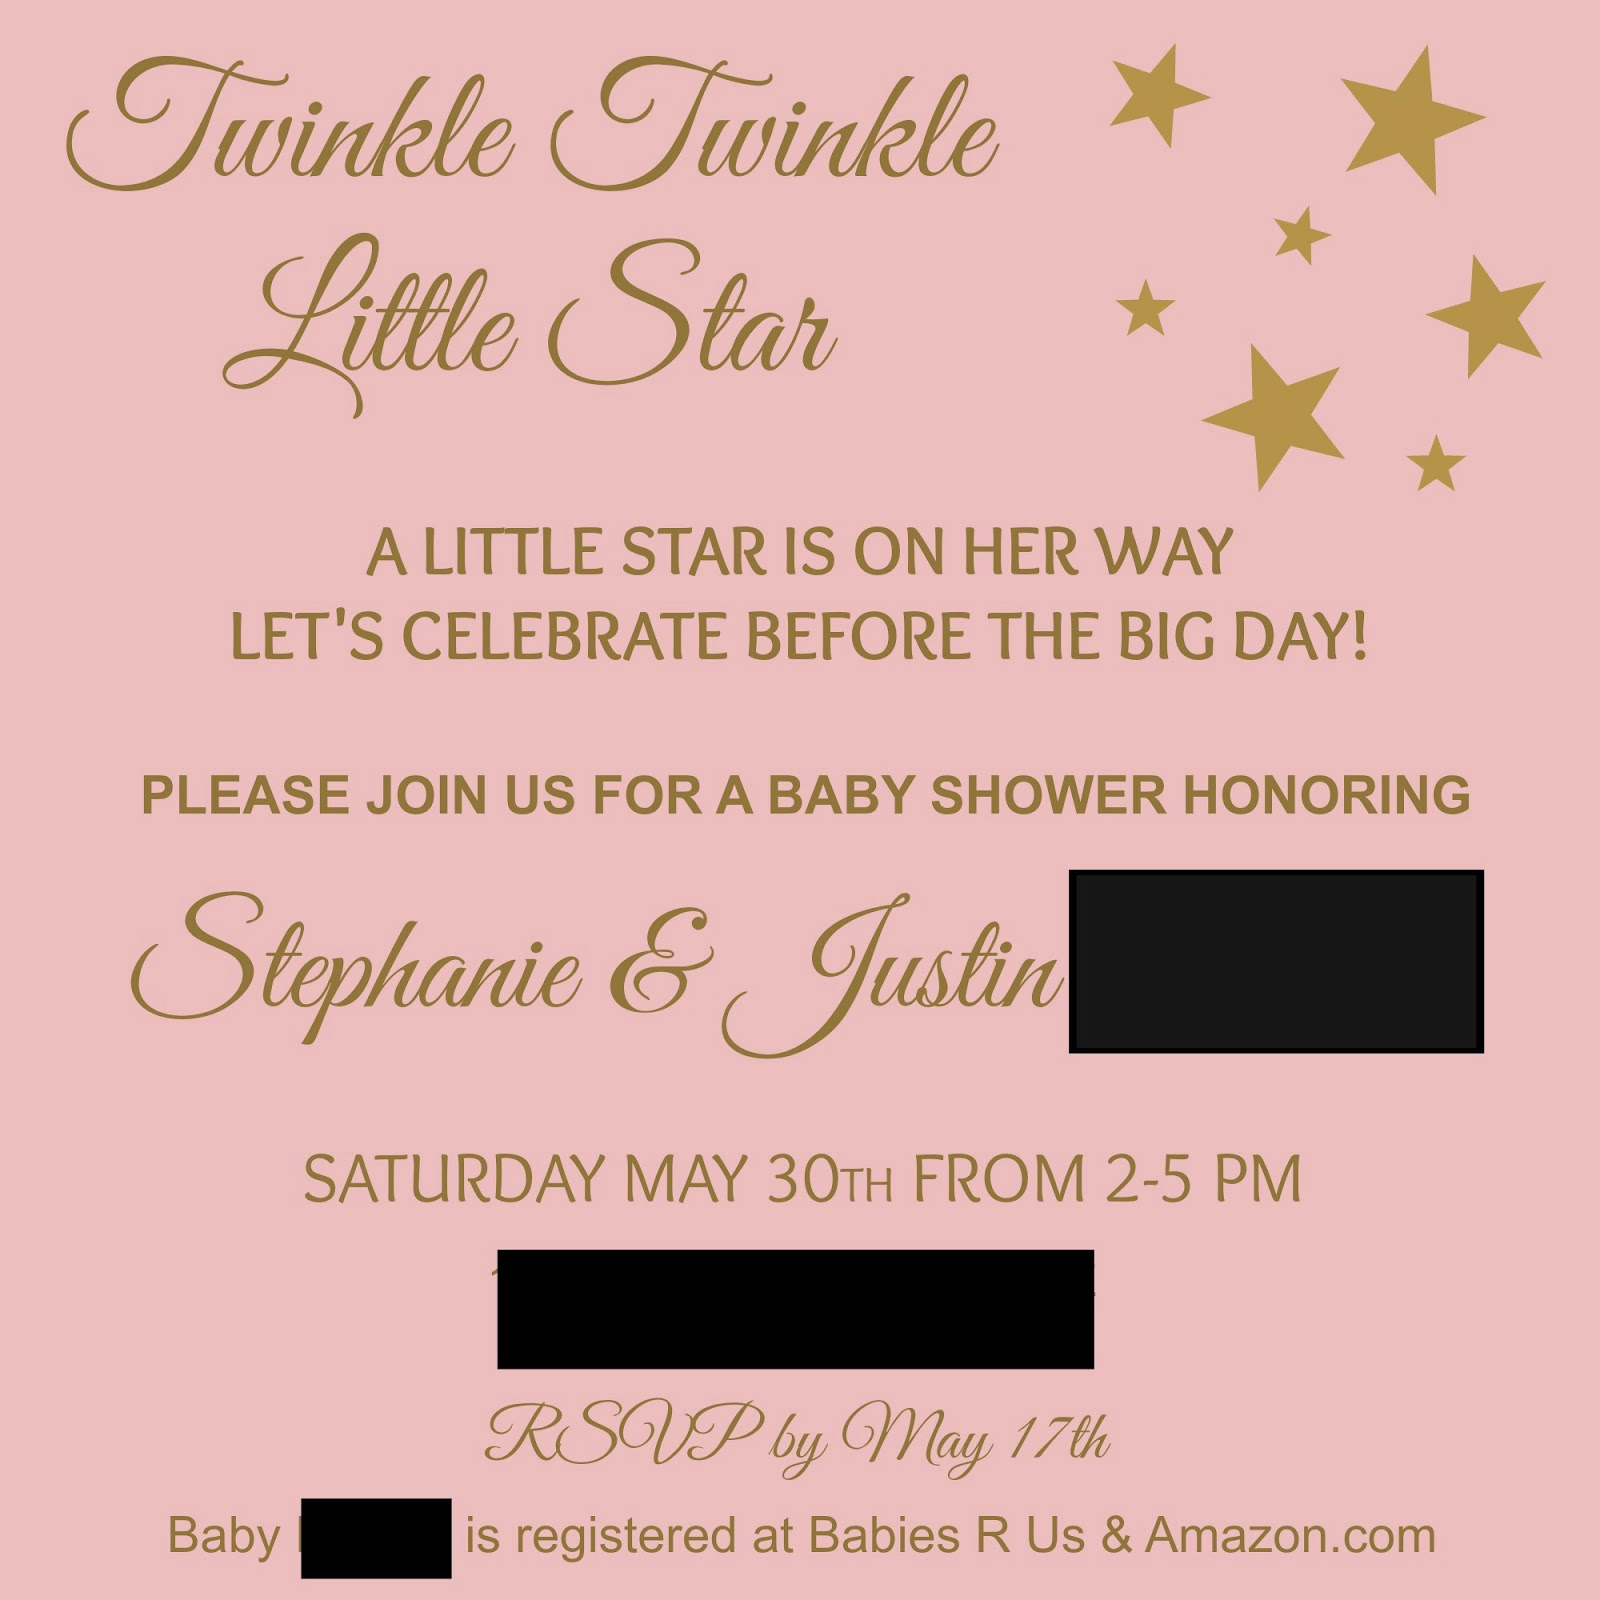 imperfect fabulous creating free digital or printable invitations